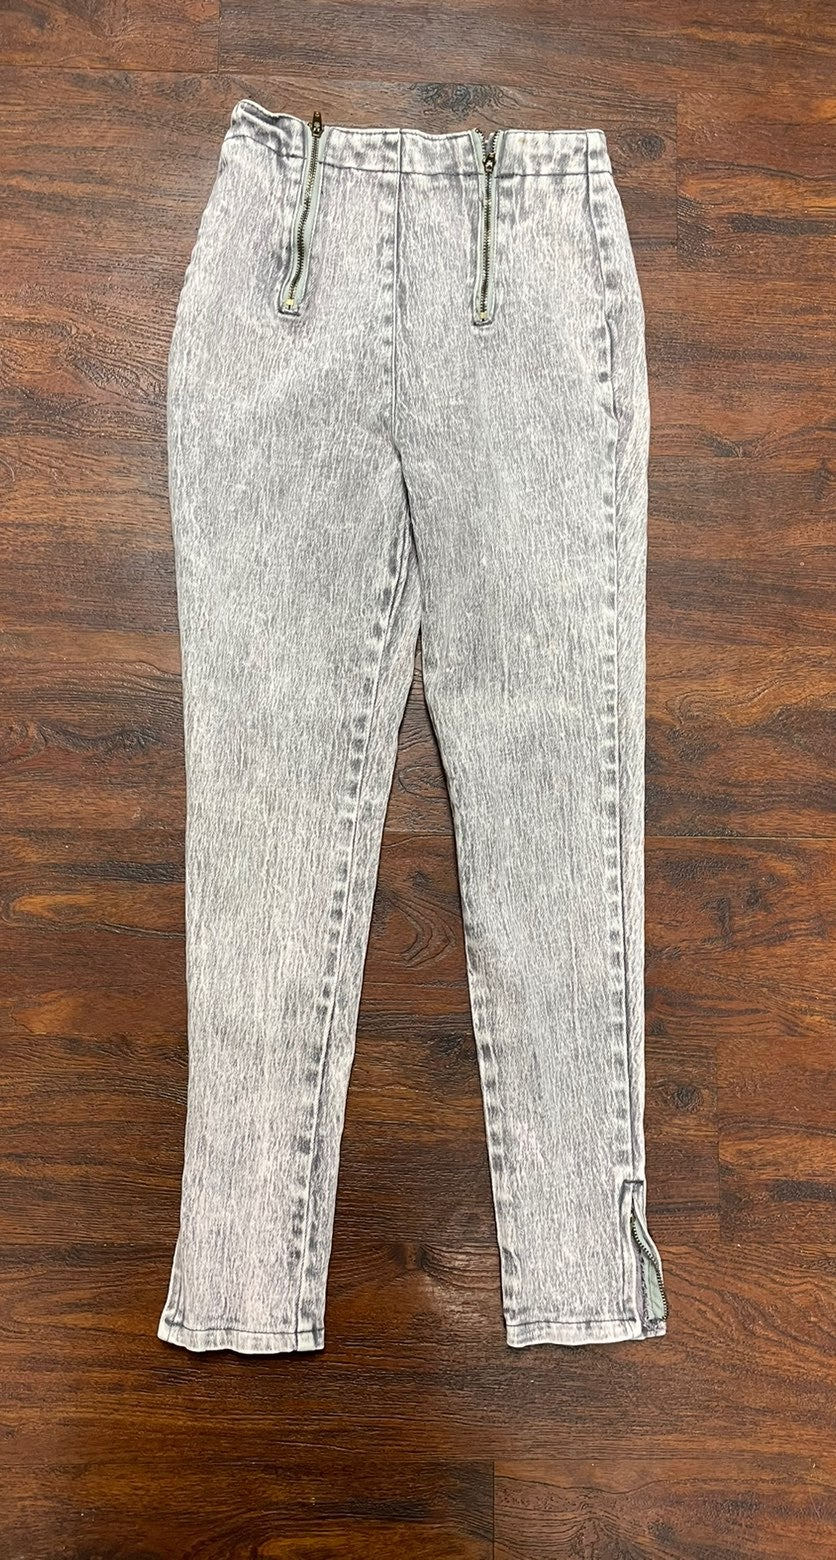 80 or 90s acidwashed jeans size 11/12 ra